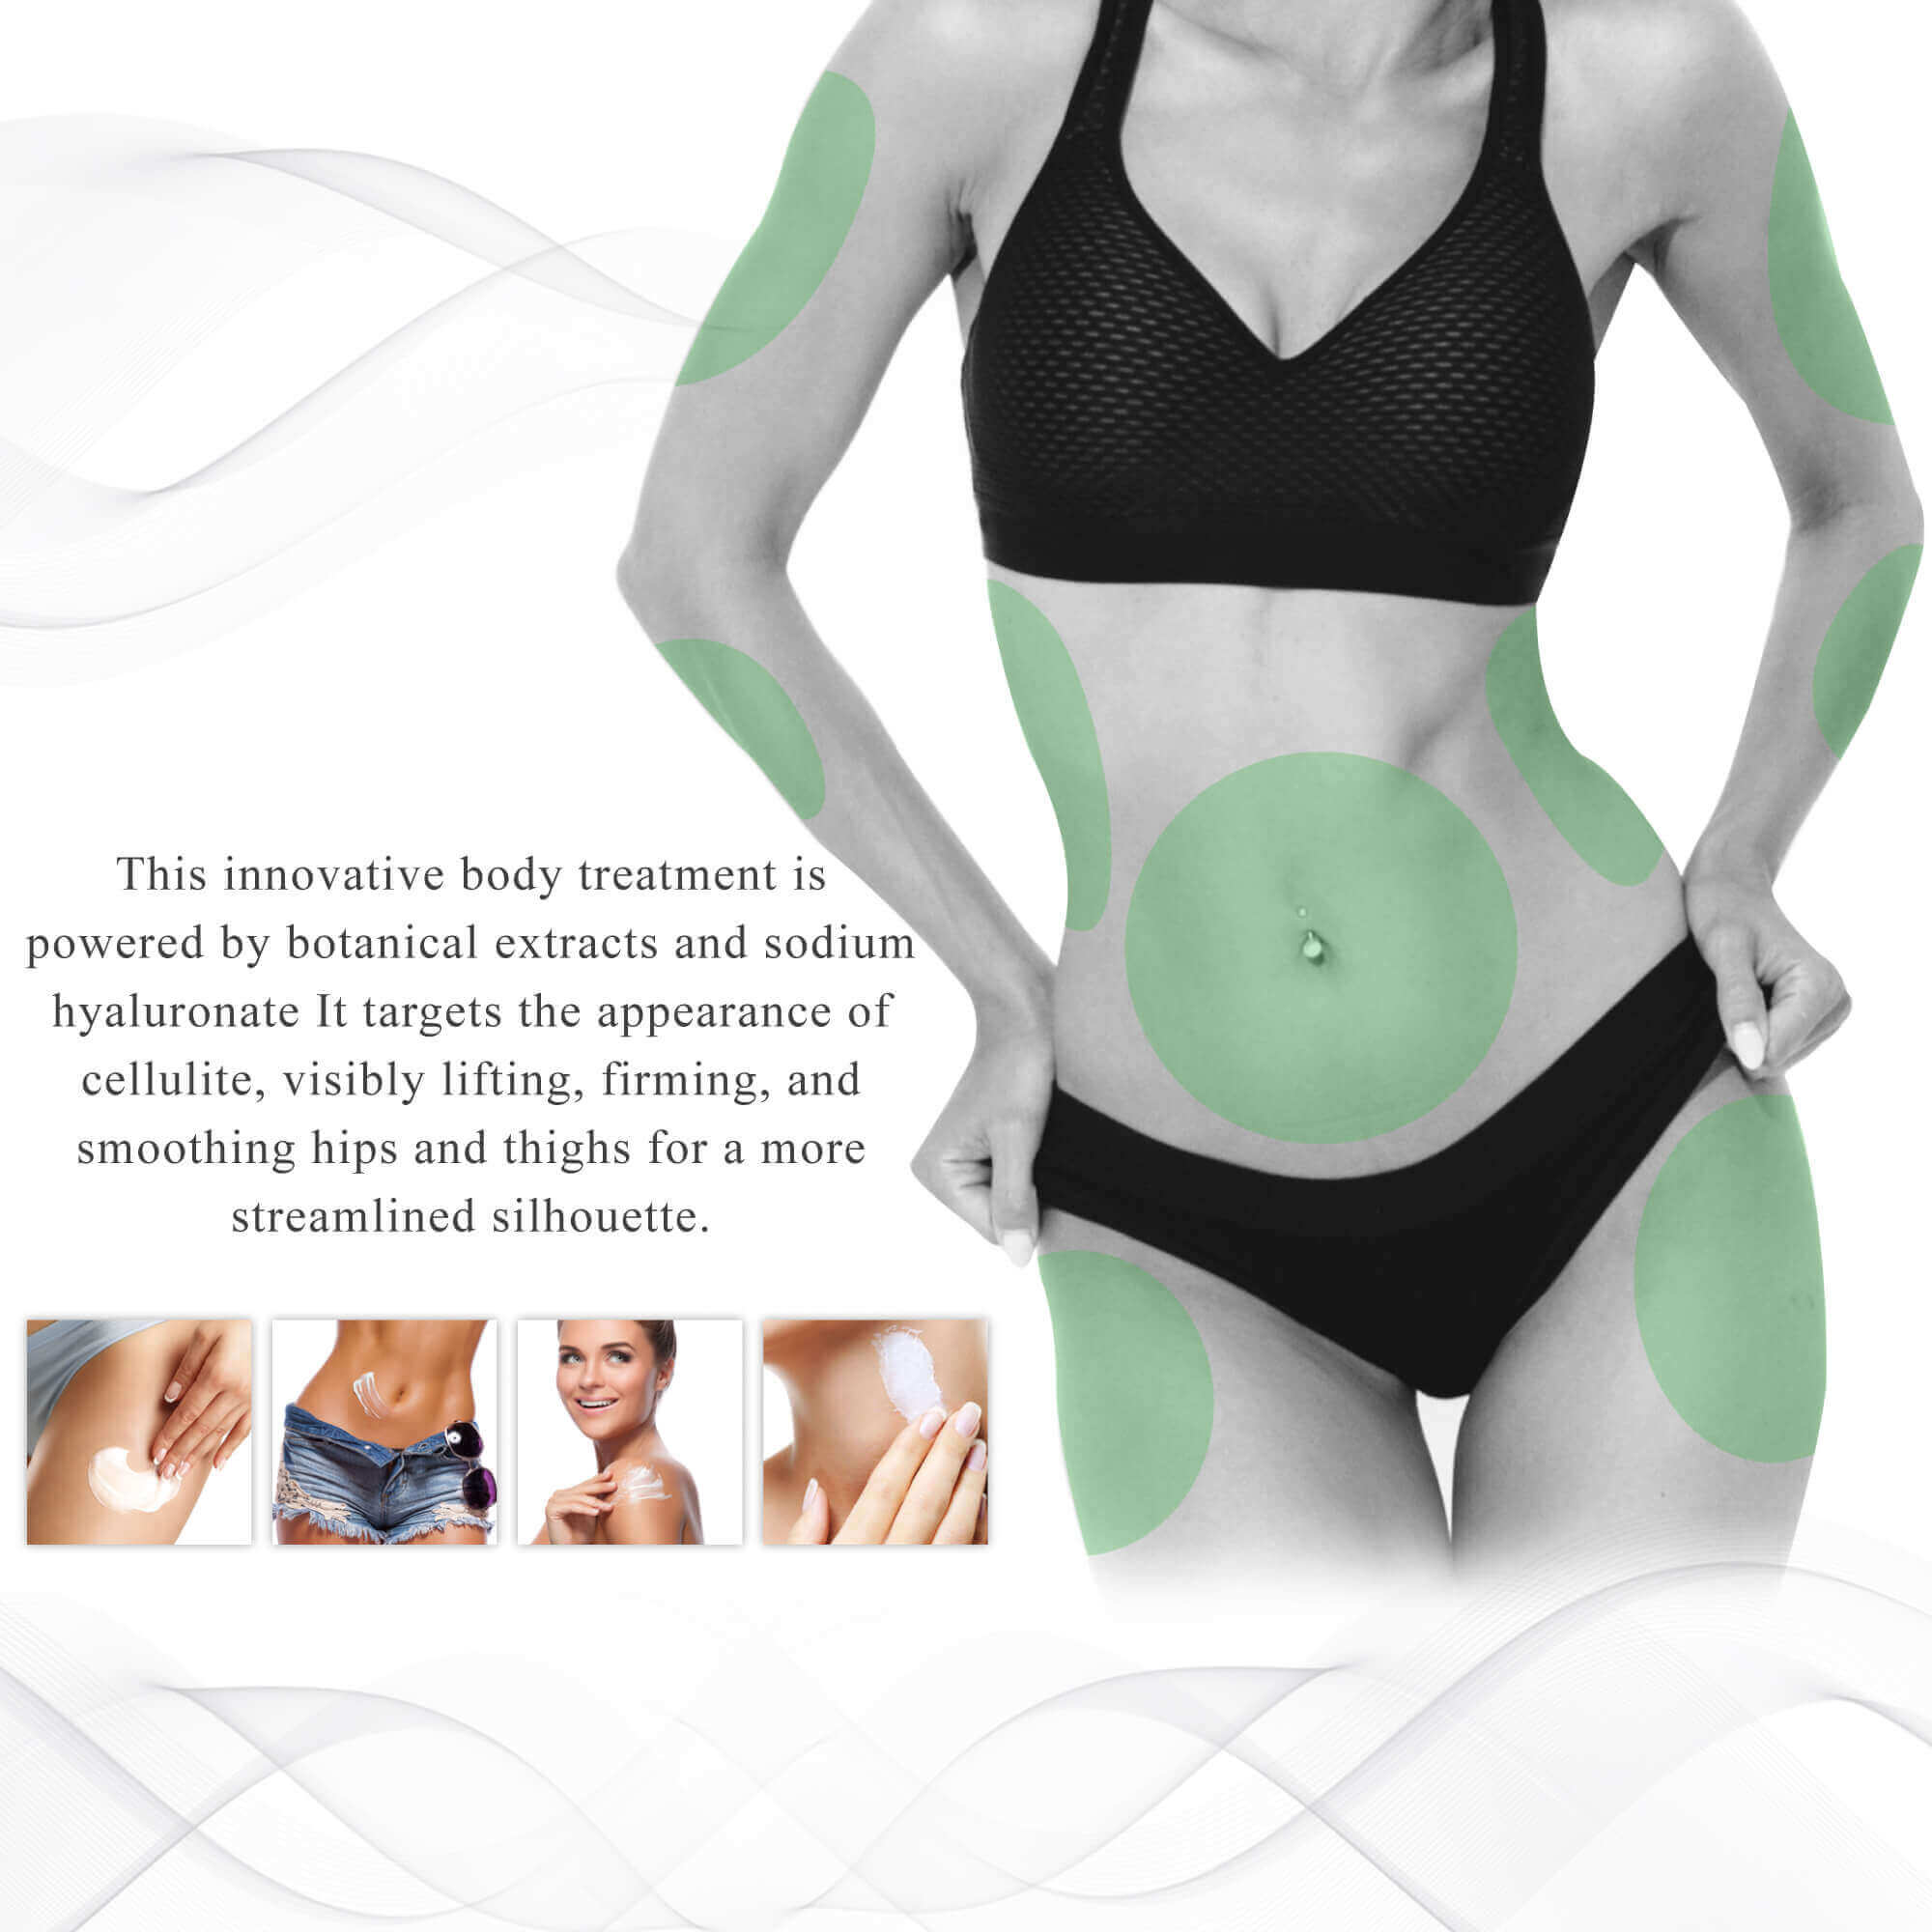 Lipo applicator defining body gel treatment application